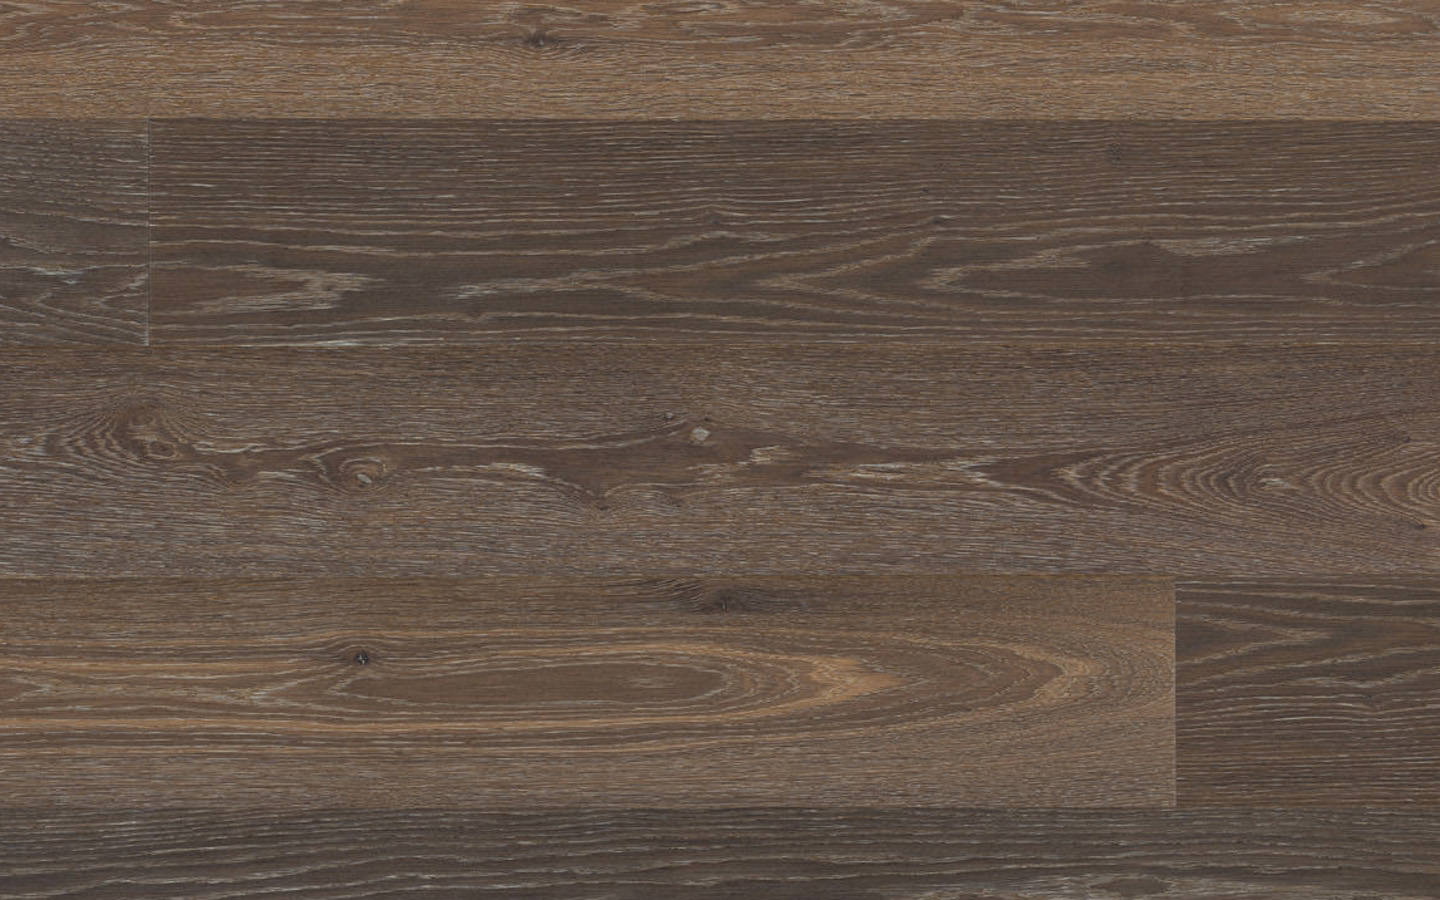 Villa by adler - Oak Bretagne premium wire brushed color oiled - 15 x 240 x 2200/2400 mm